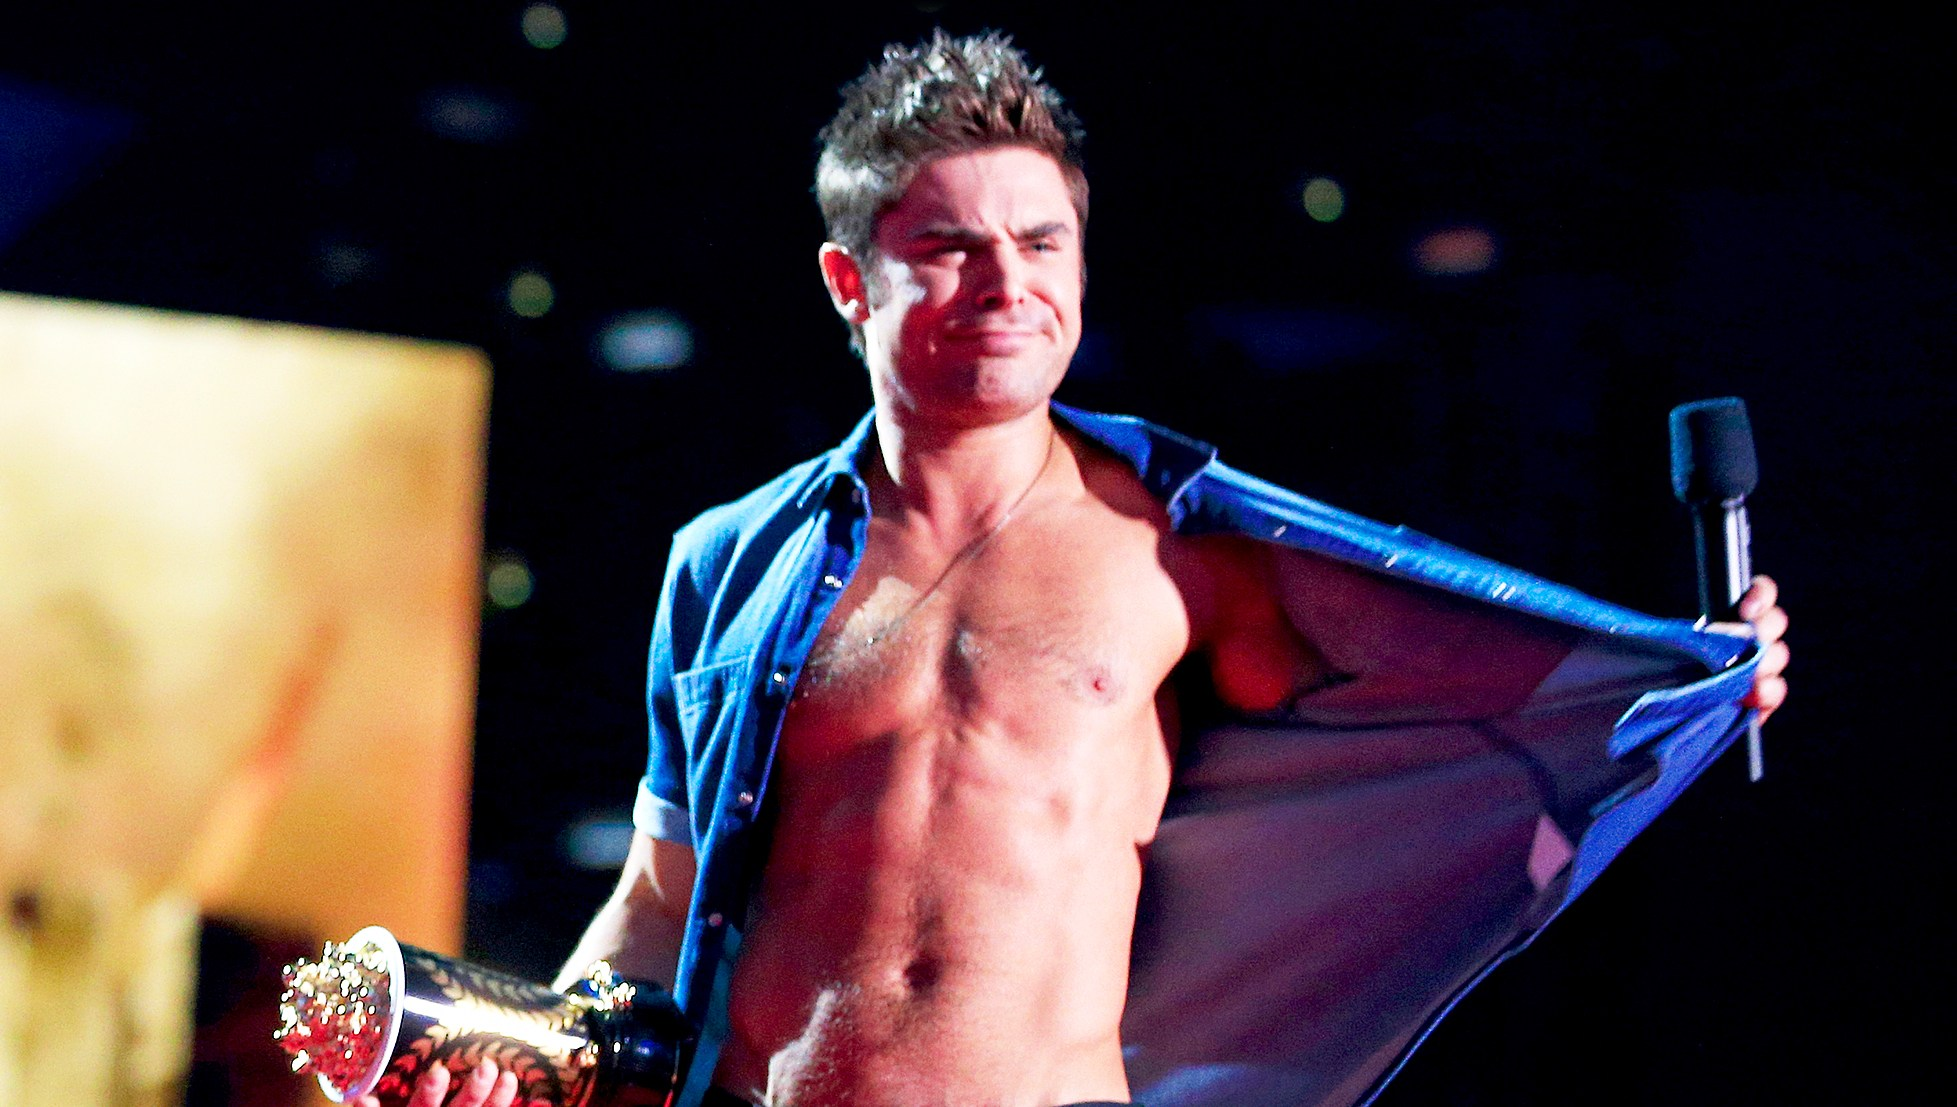 Zac Efron onstage at the 2014 MTV Movie Awards at Nokia Theatre L.A. Live in Los Angeles, California.